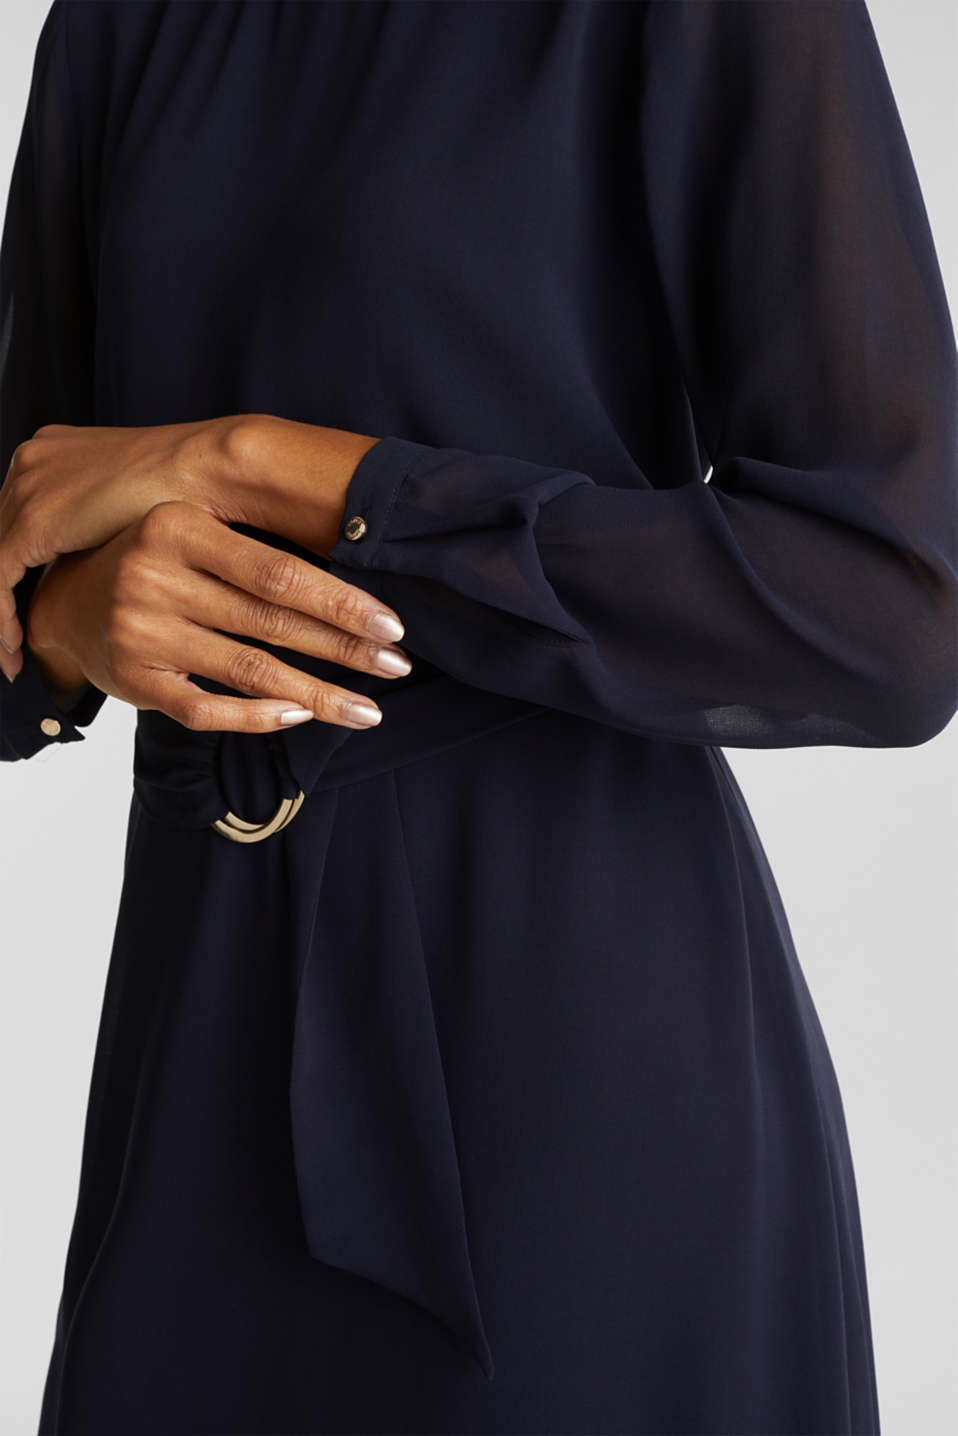 Flowing chiffon dress with a belt, NAVY, detail image number 3